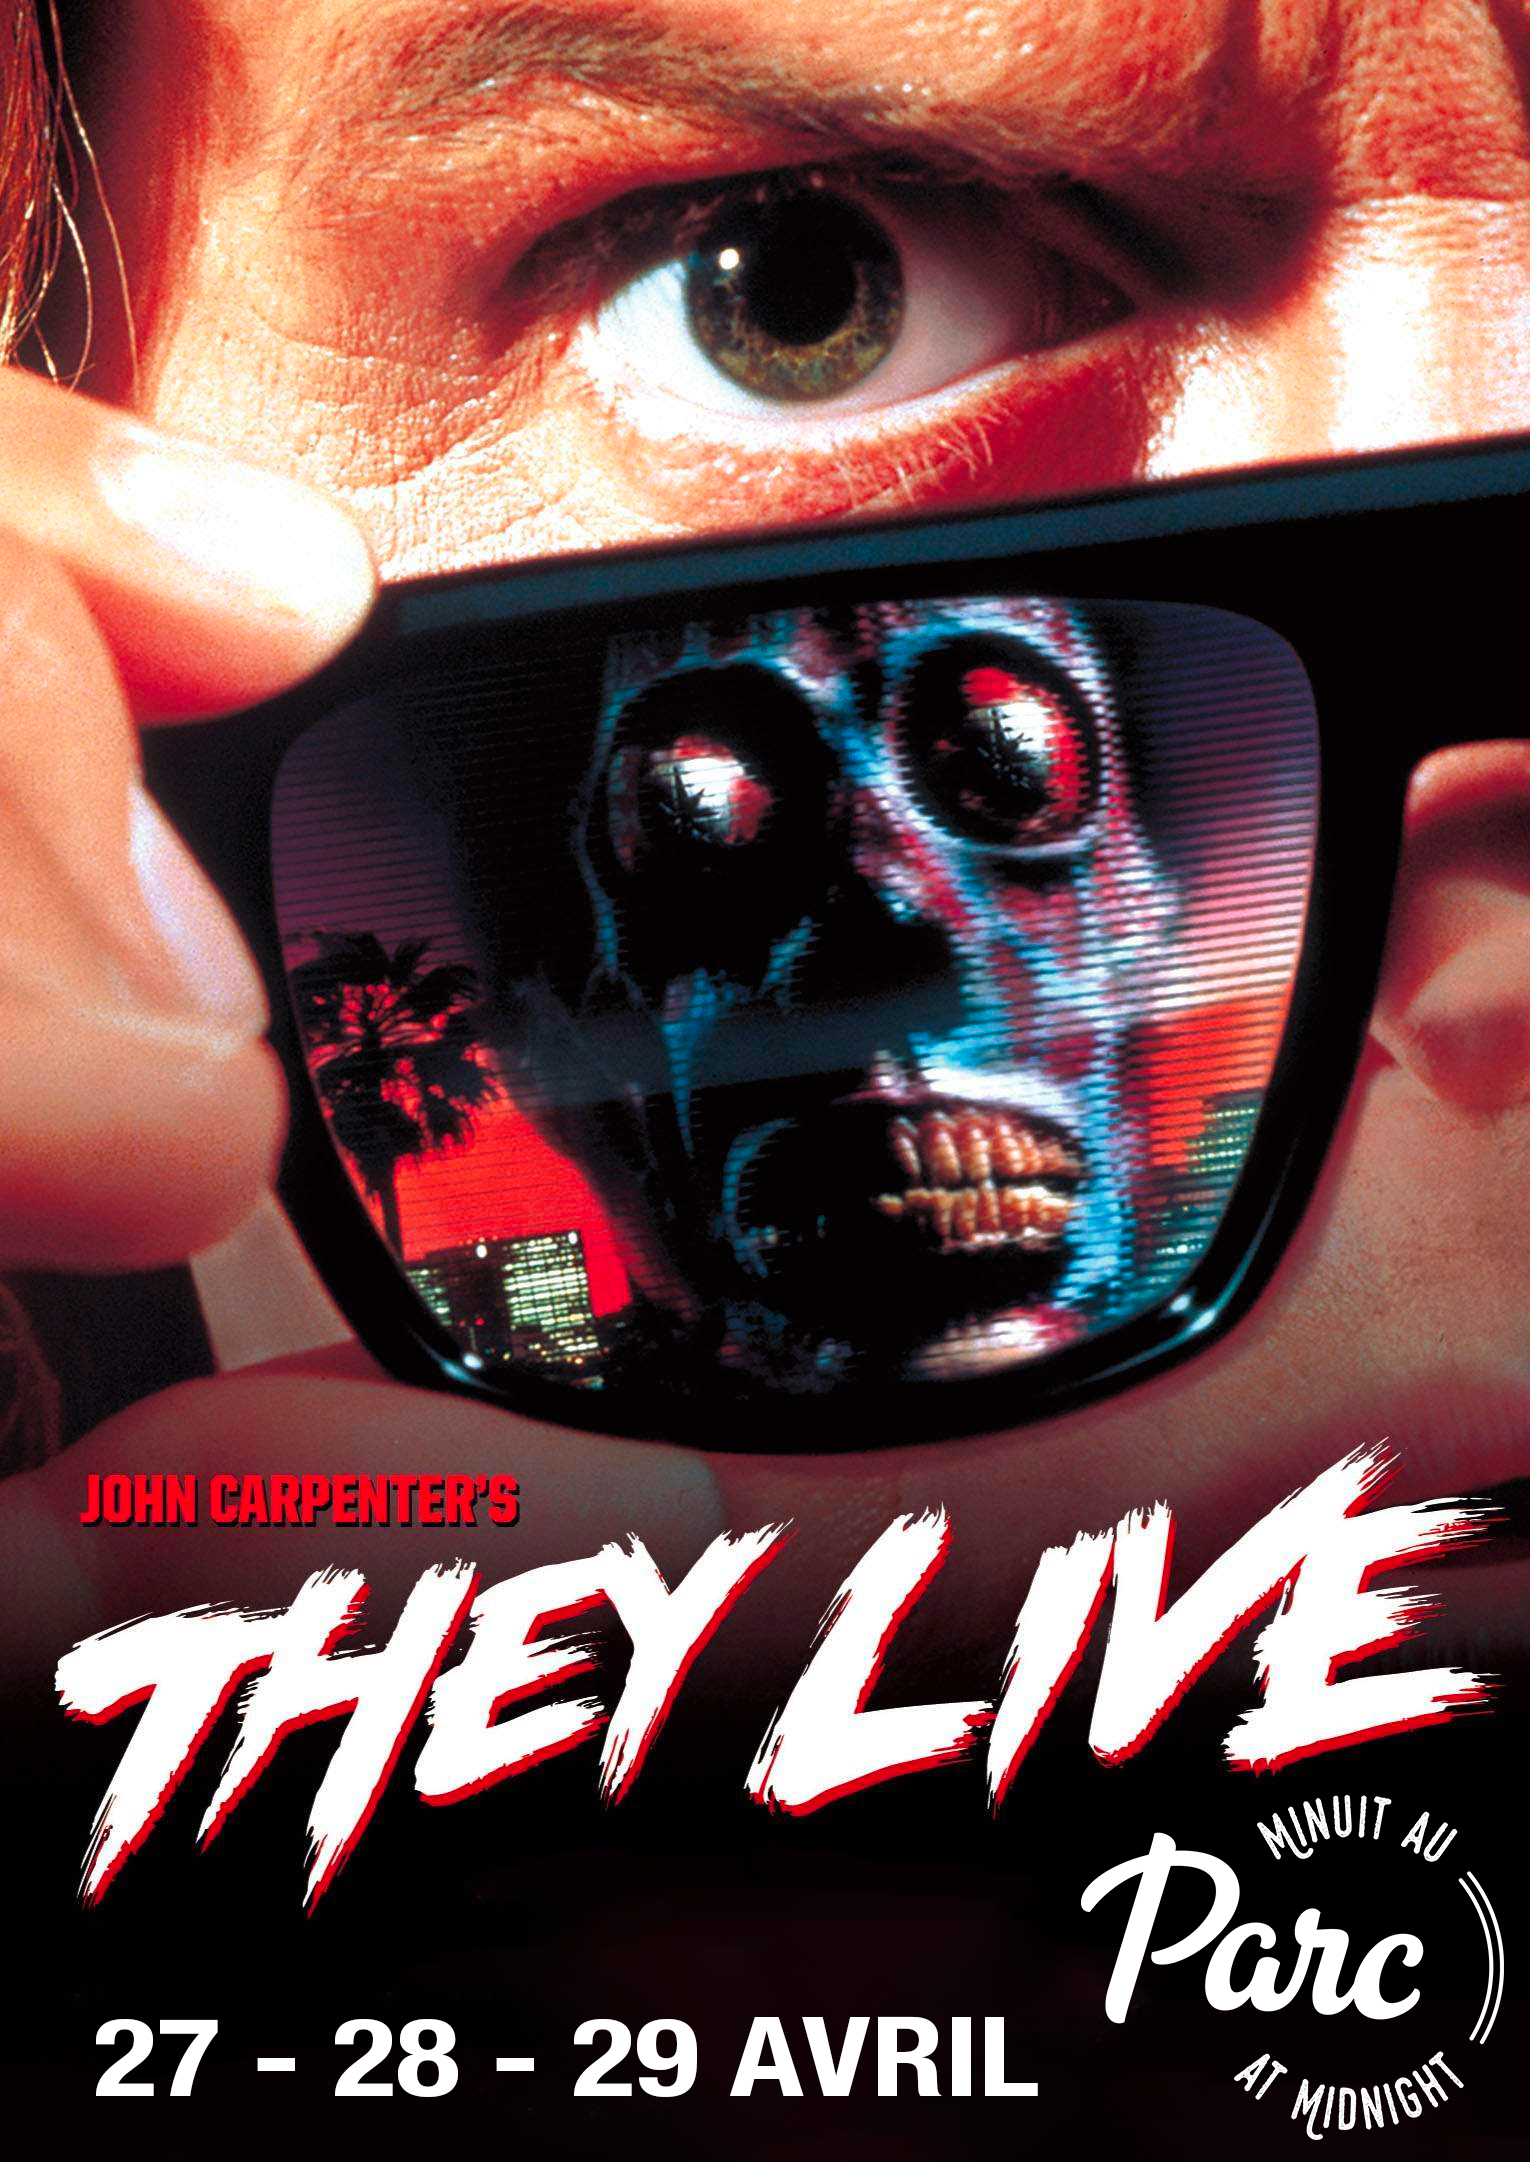 PARC AT MIDNIGHT: THEY LIVE - 30th anniversary